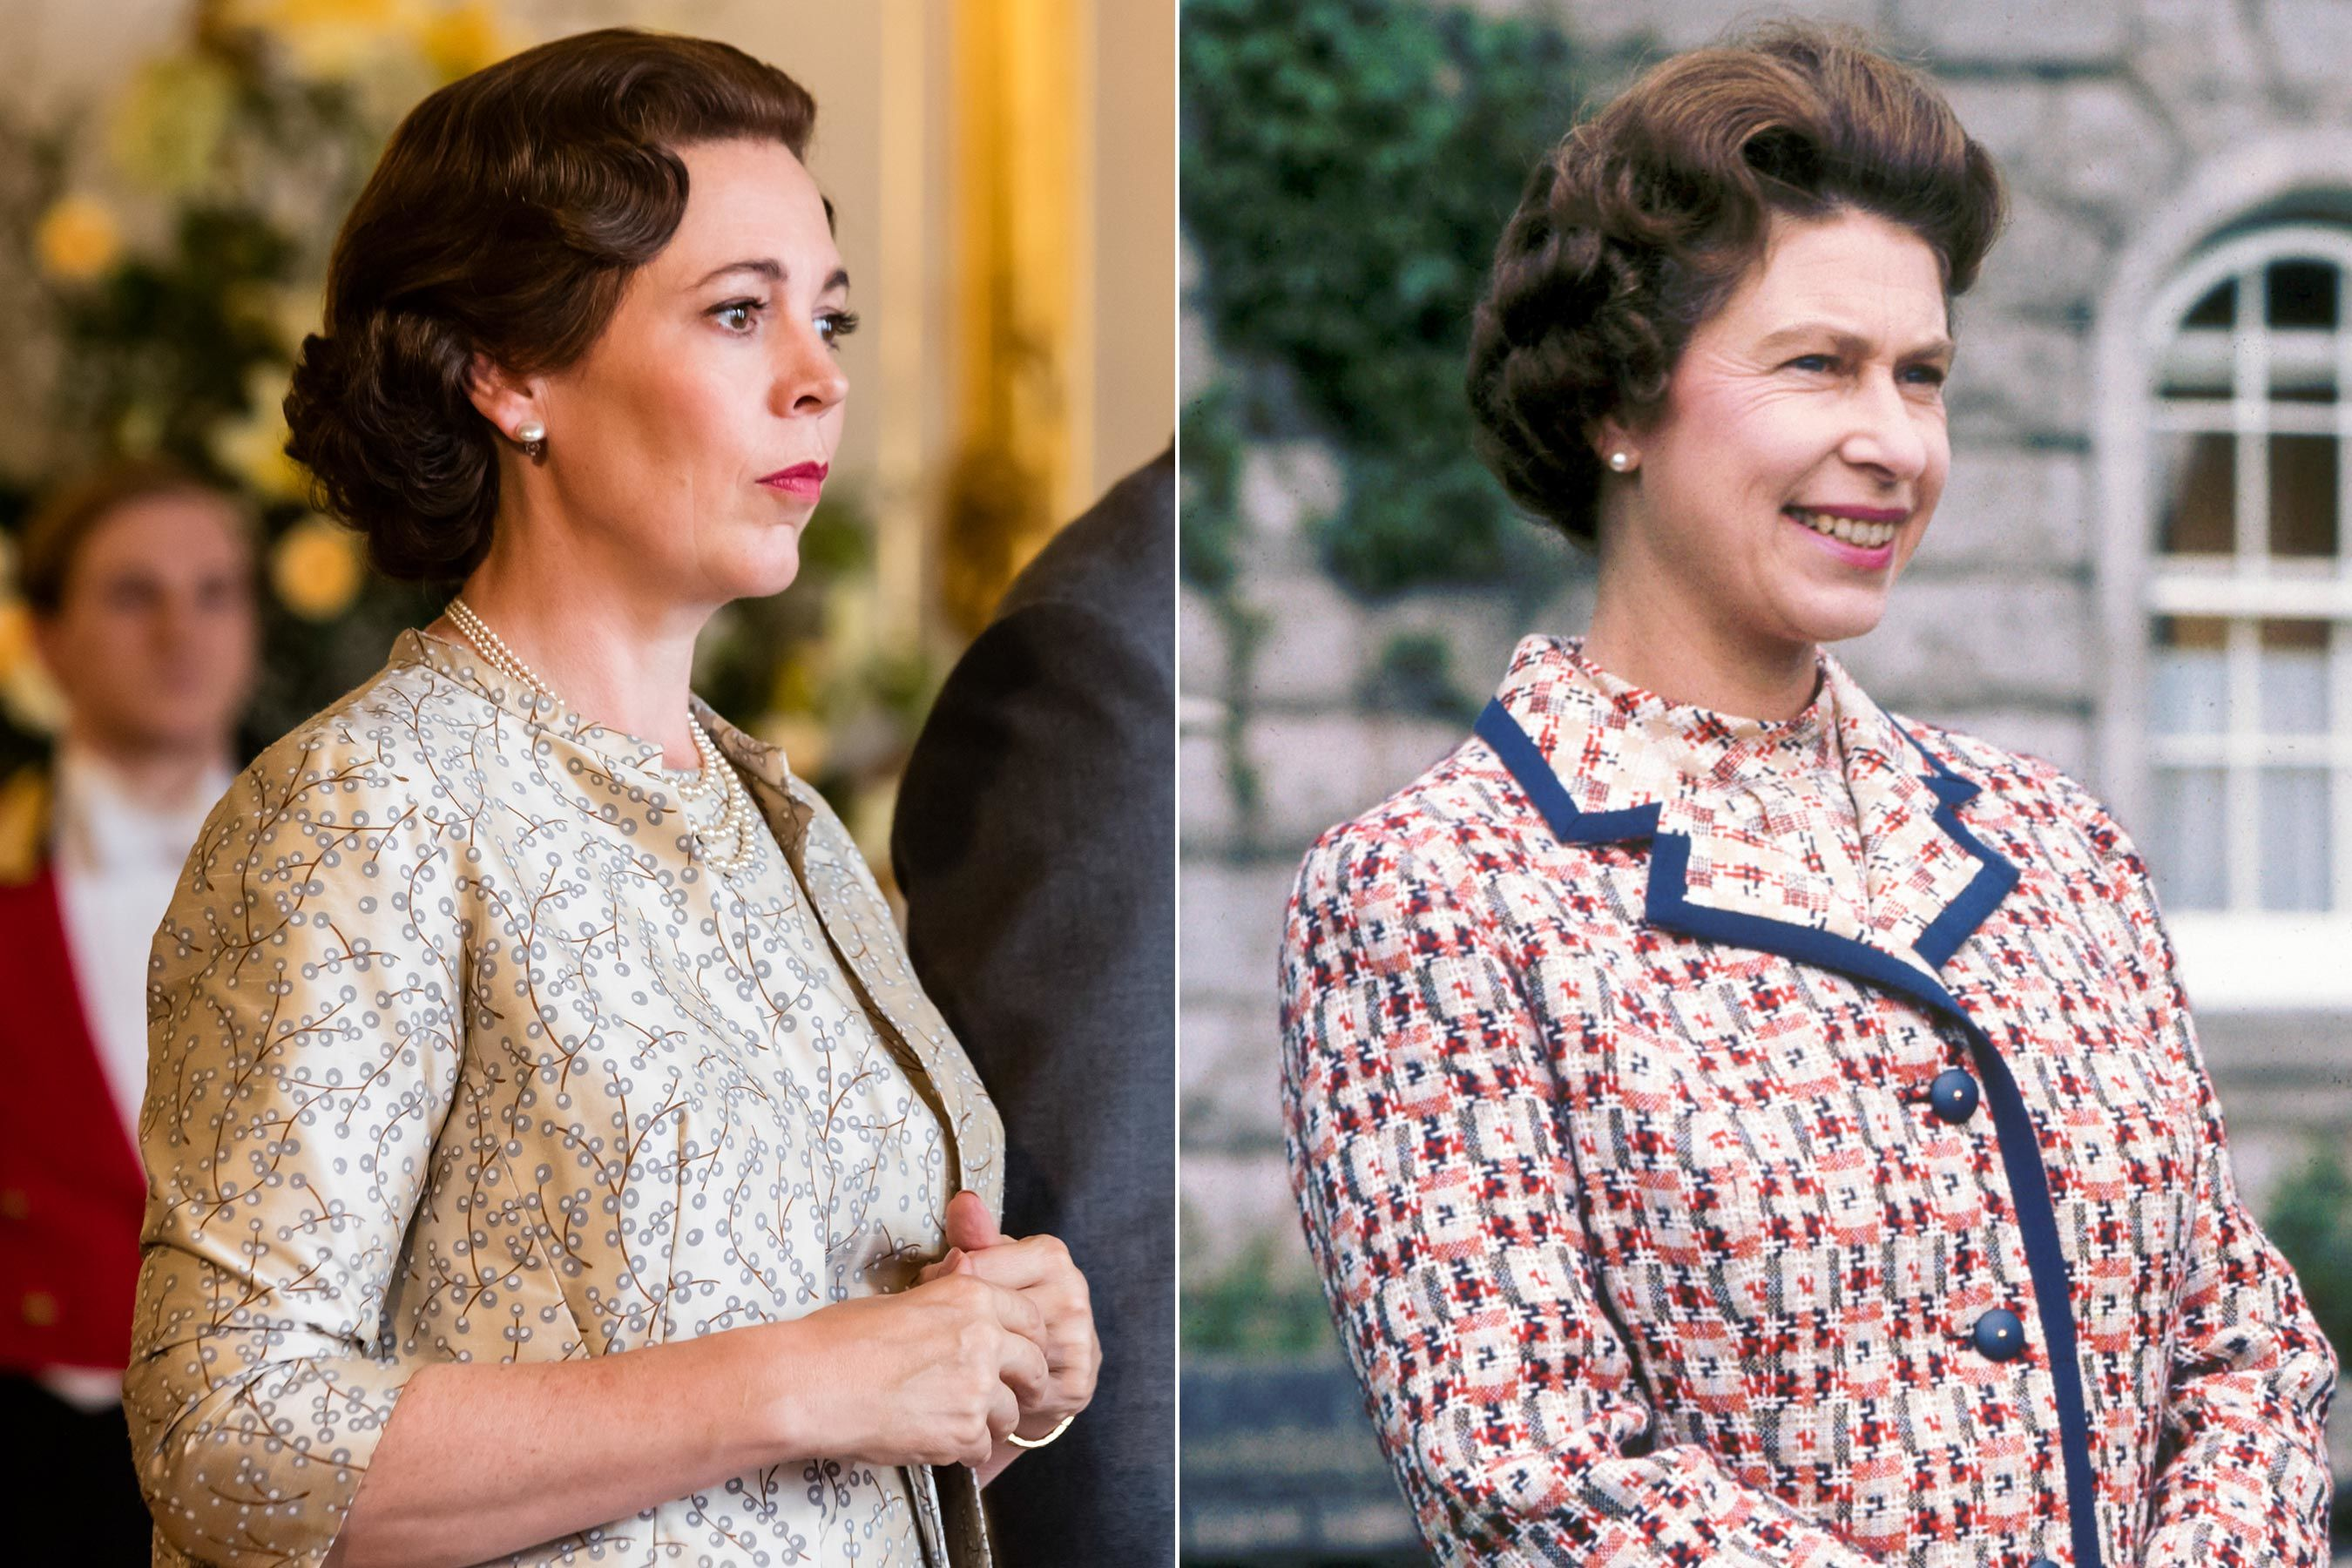 The Crown star Olivia Colman accidentally 'stumbled' into a meeting with the real Queen